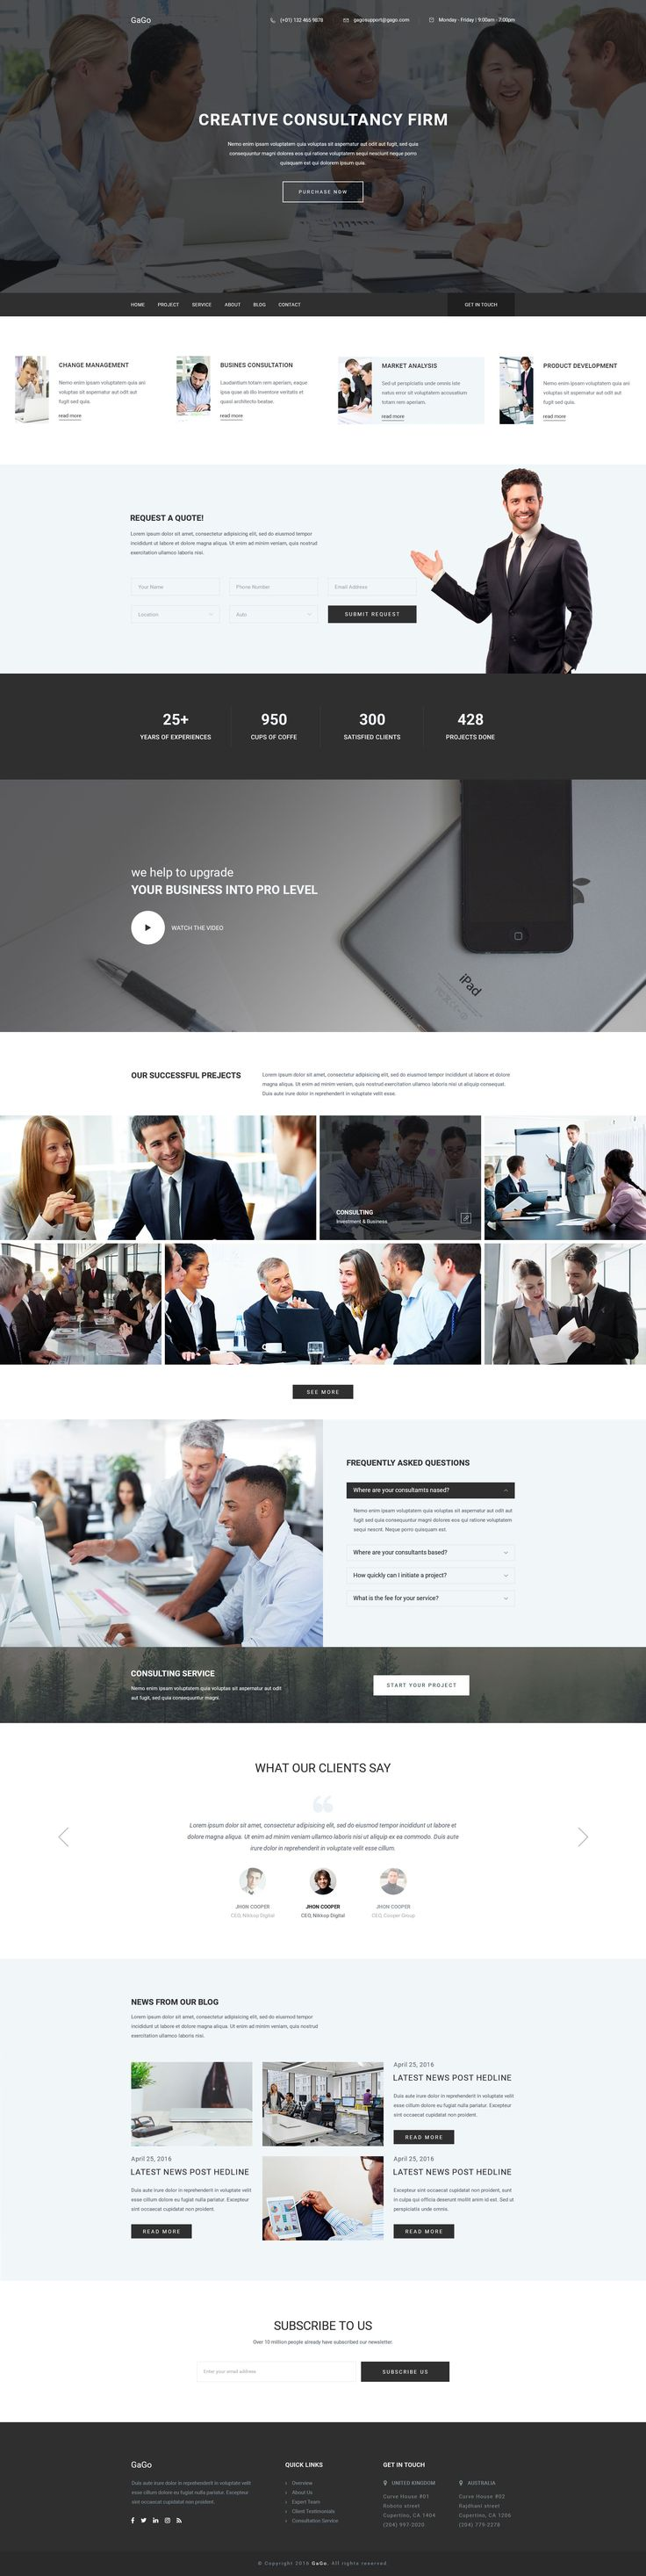 Business consulting and finance website template 01 #FinanceWebsite